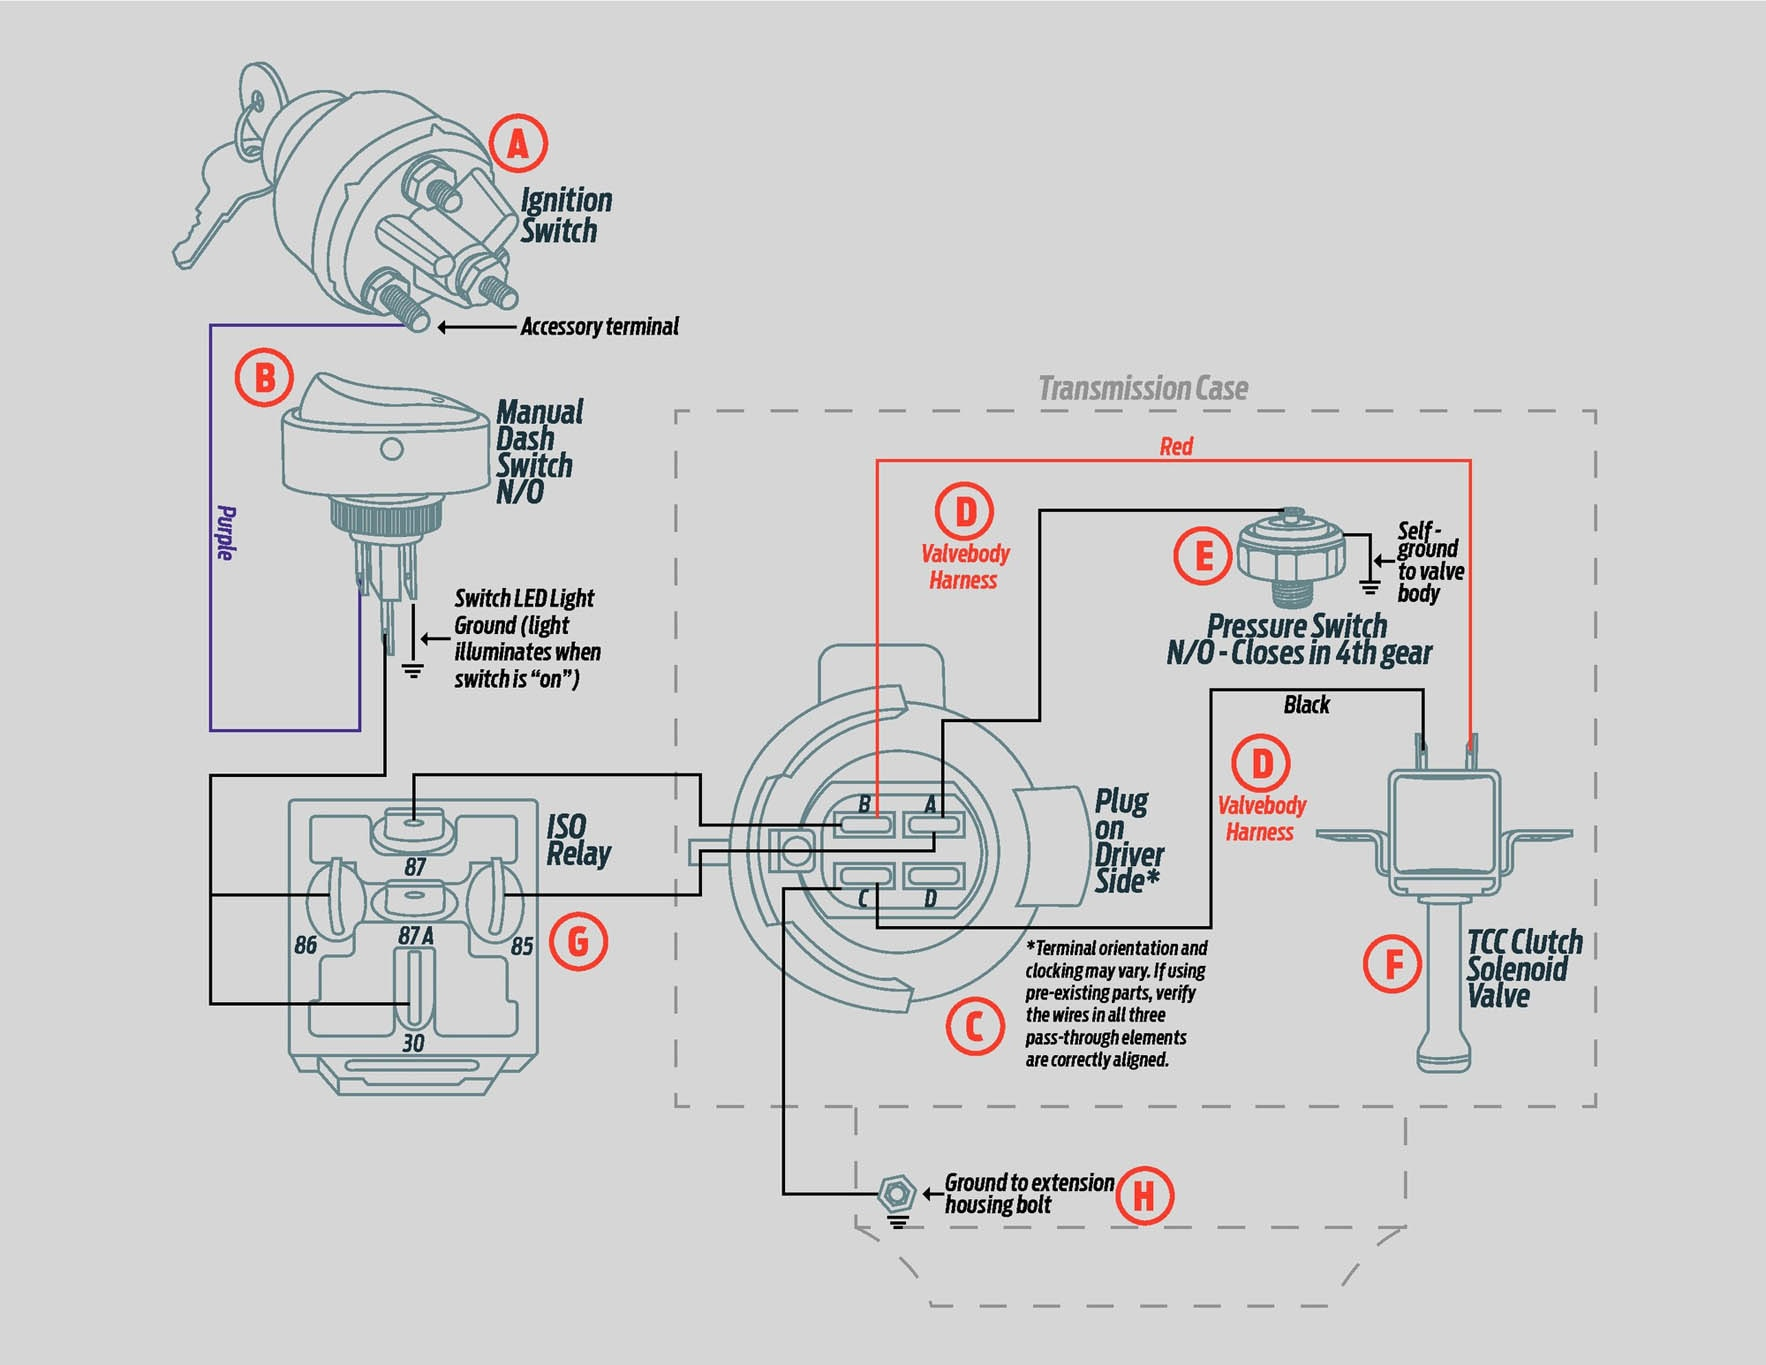 Magic Mobility X8 Wiring Diagram | Wiring Schematic Diagram ... on